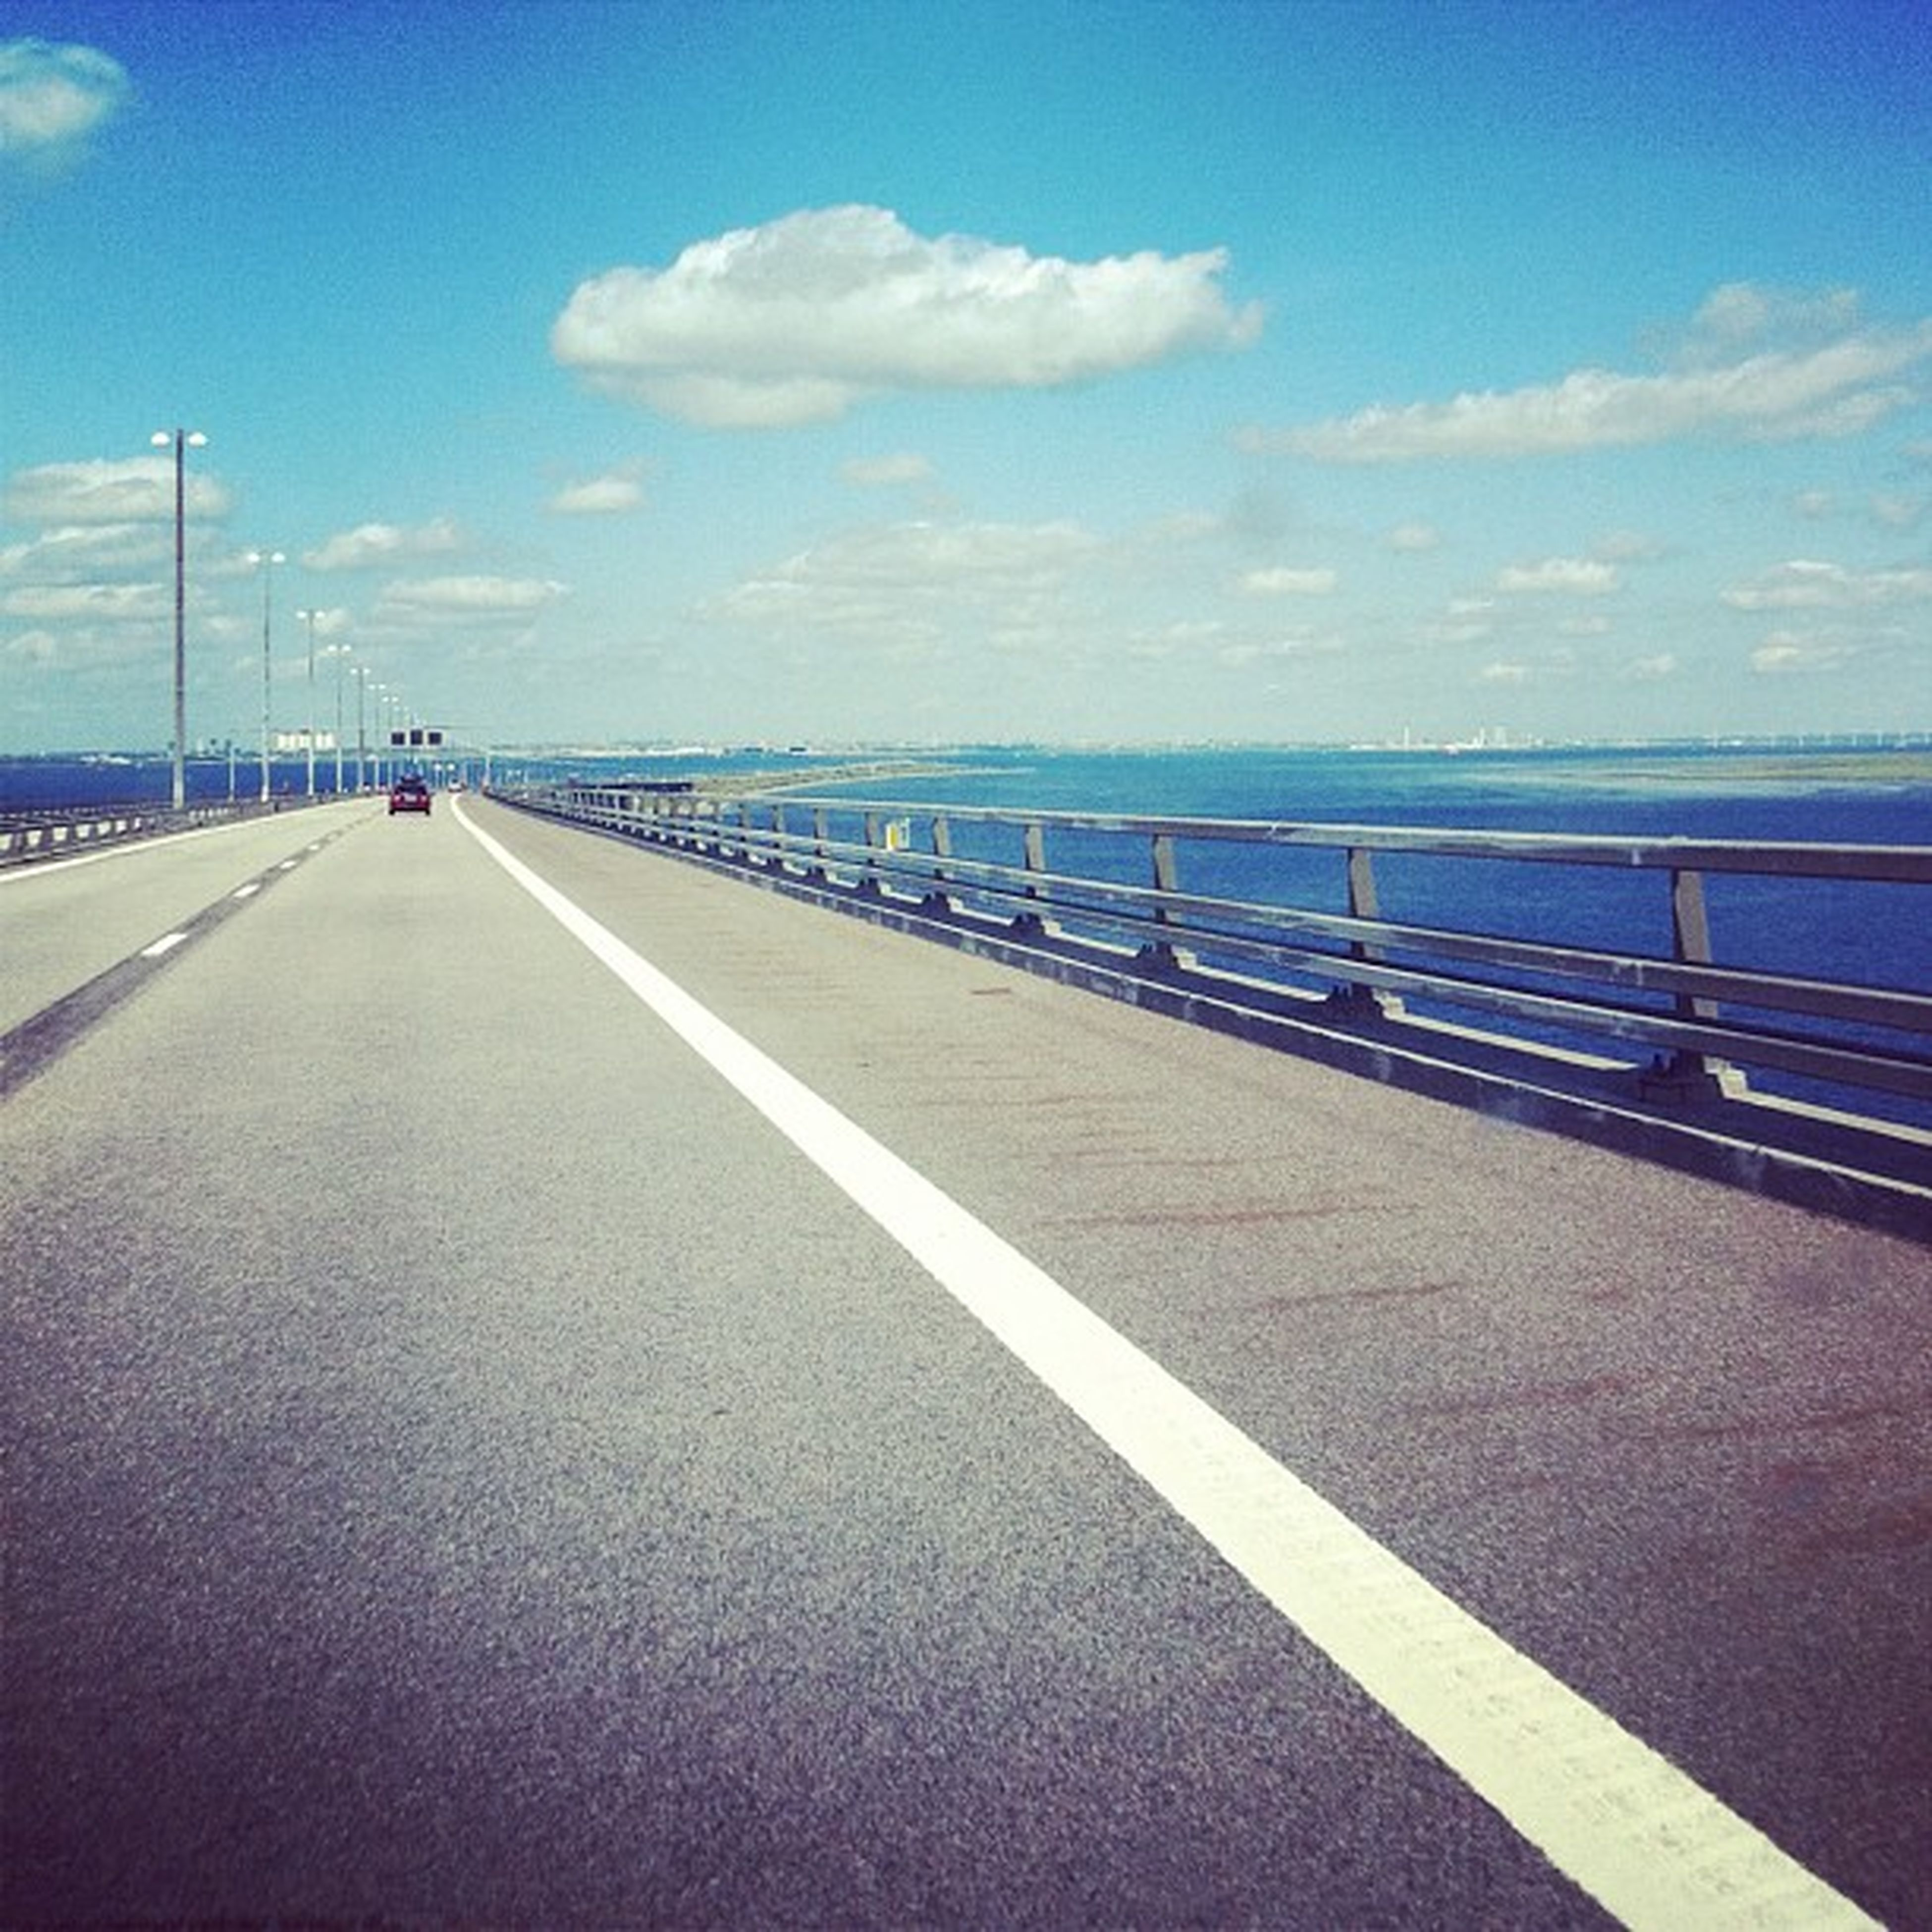 sky, transportation, the way forward, sea, diminishing perspective, water, railing, road, road marking, vanishing point, cloud - sky, cloud, blue, built structure, connection, incidental people, long, outdoors, empty, day